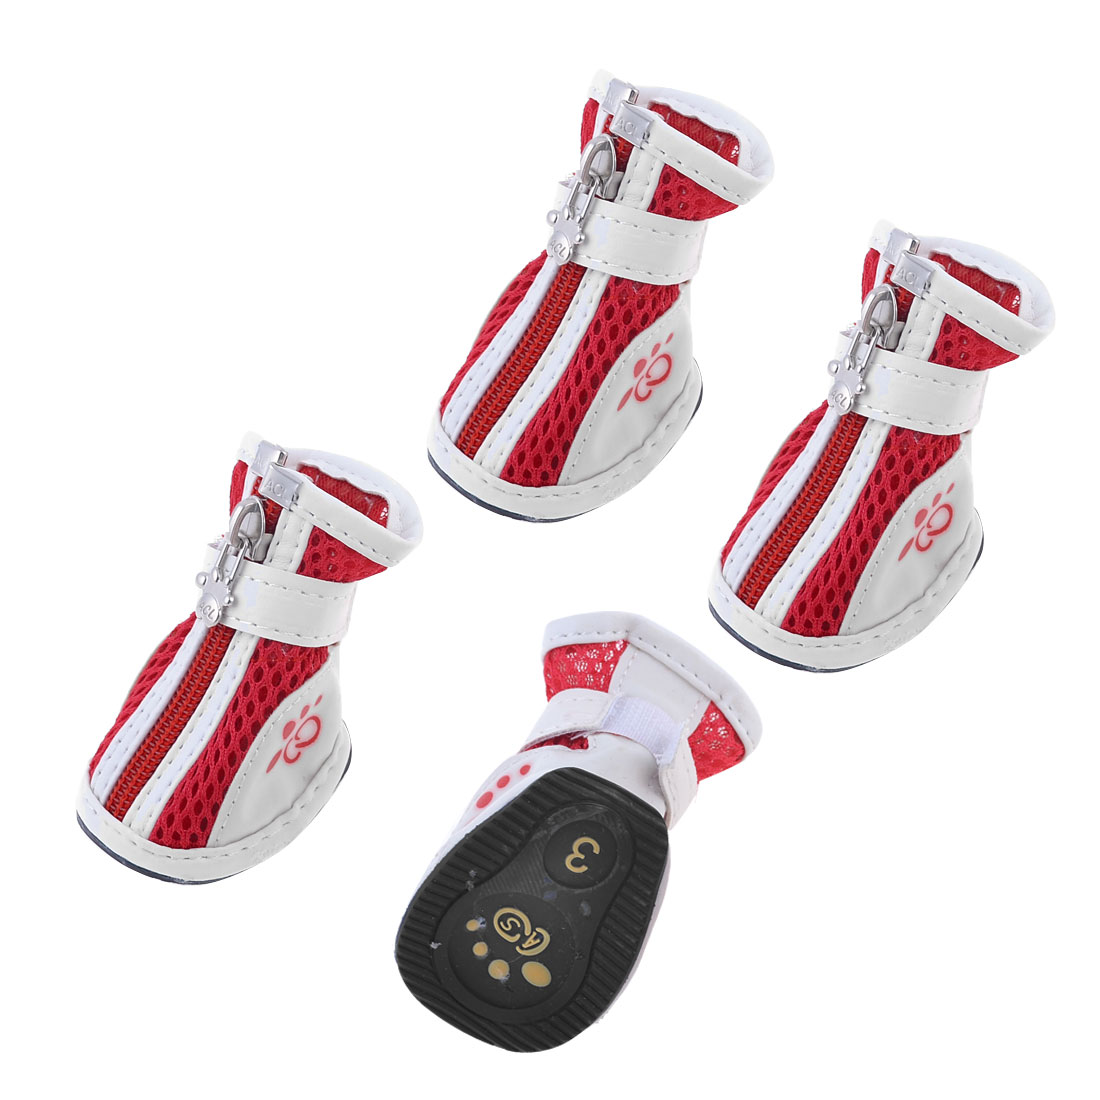 Doggy Chihuaha Nonslip Rubber Sole Hook Loop Fastener Shoes White Red 2 Pair S